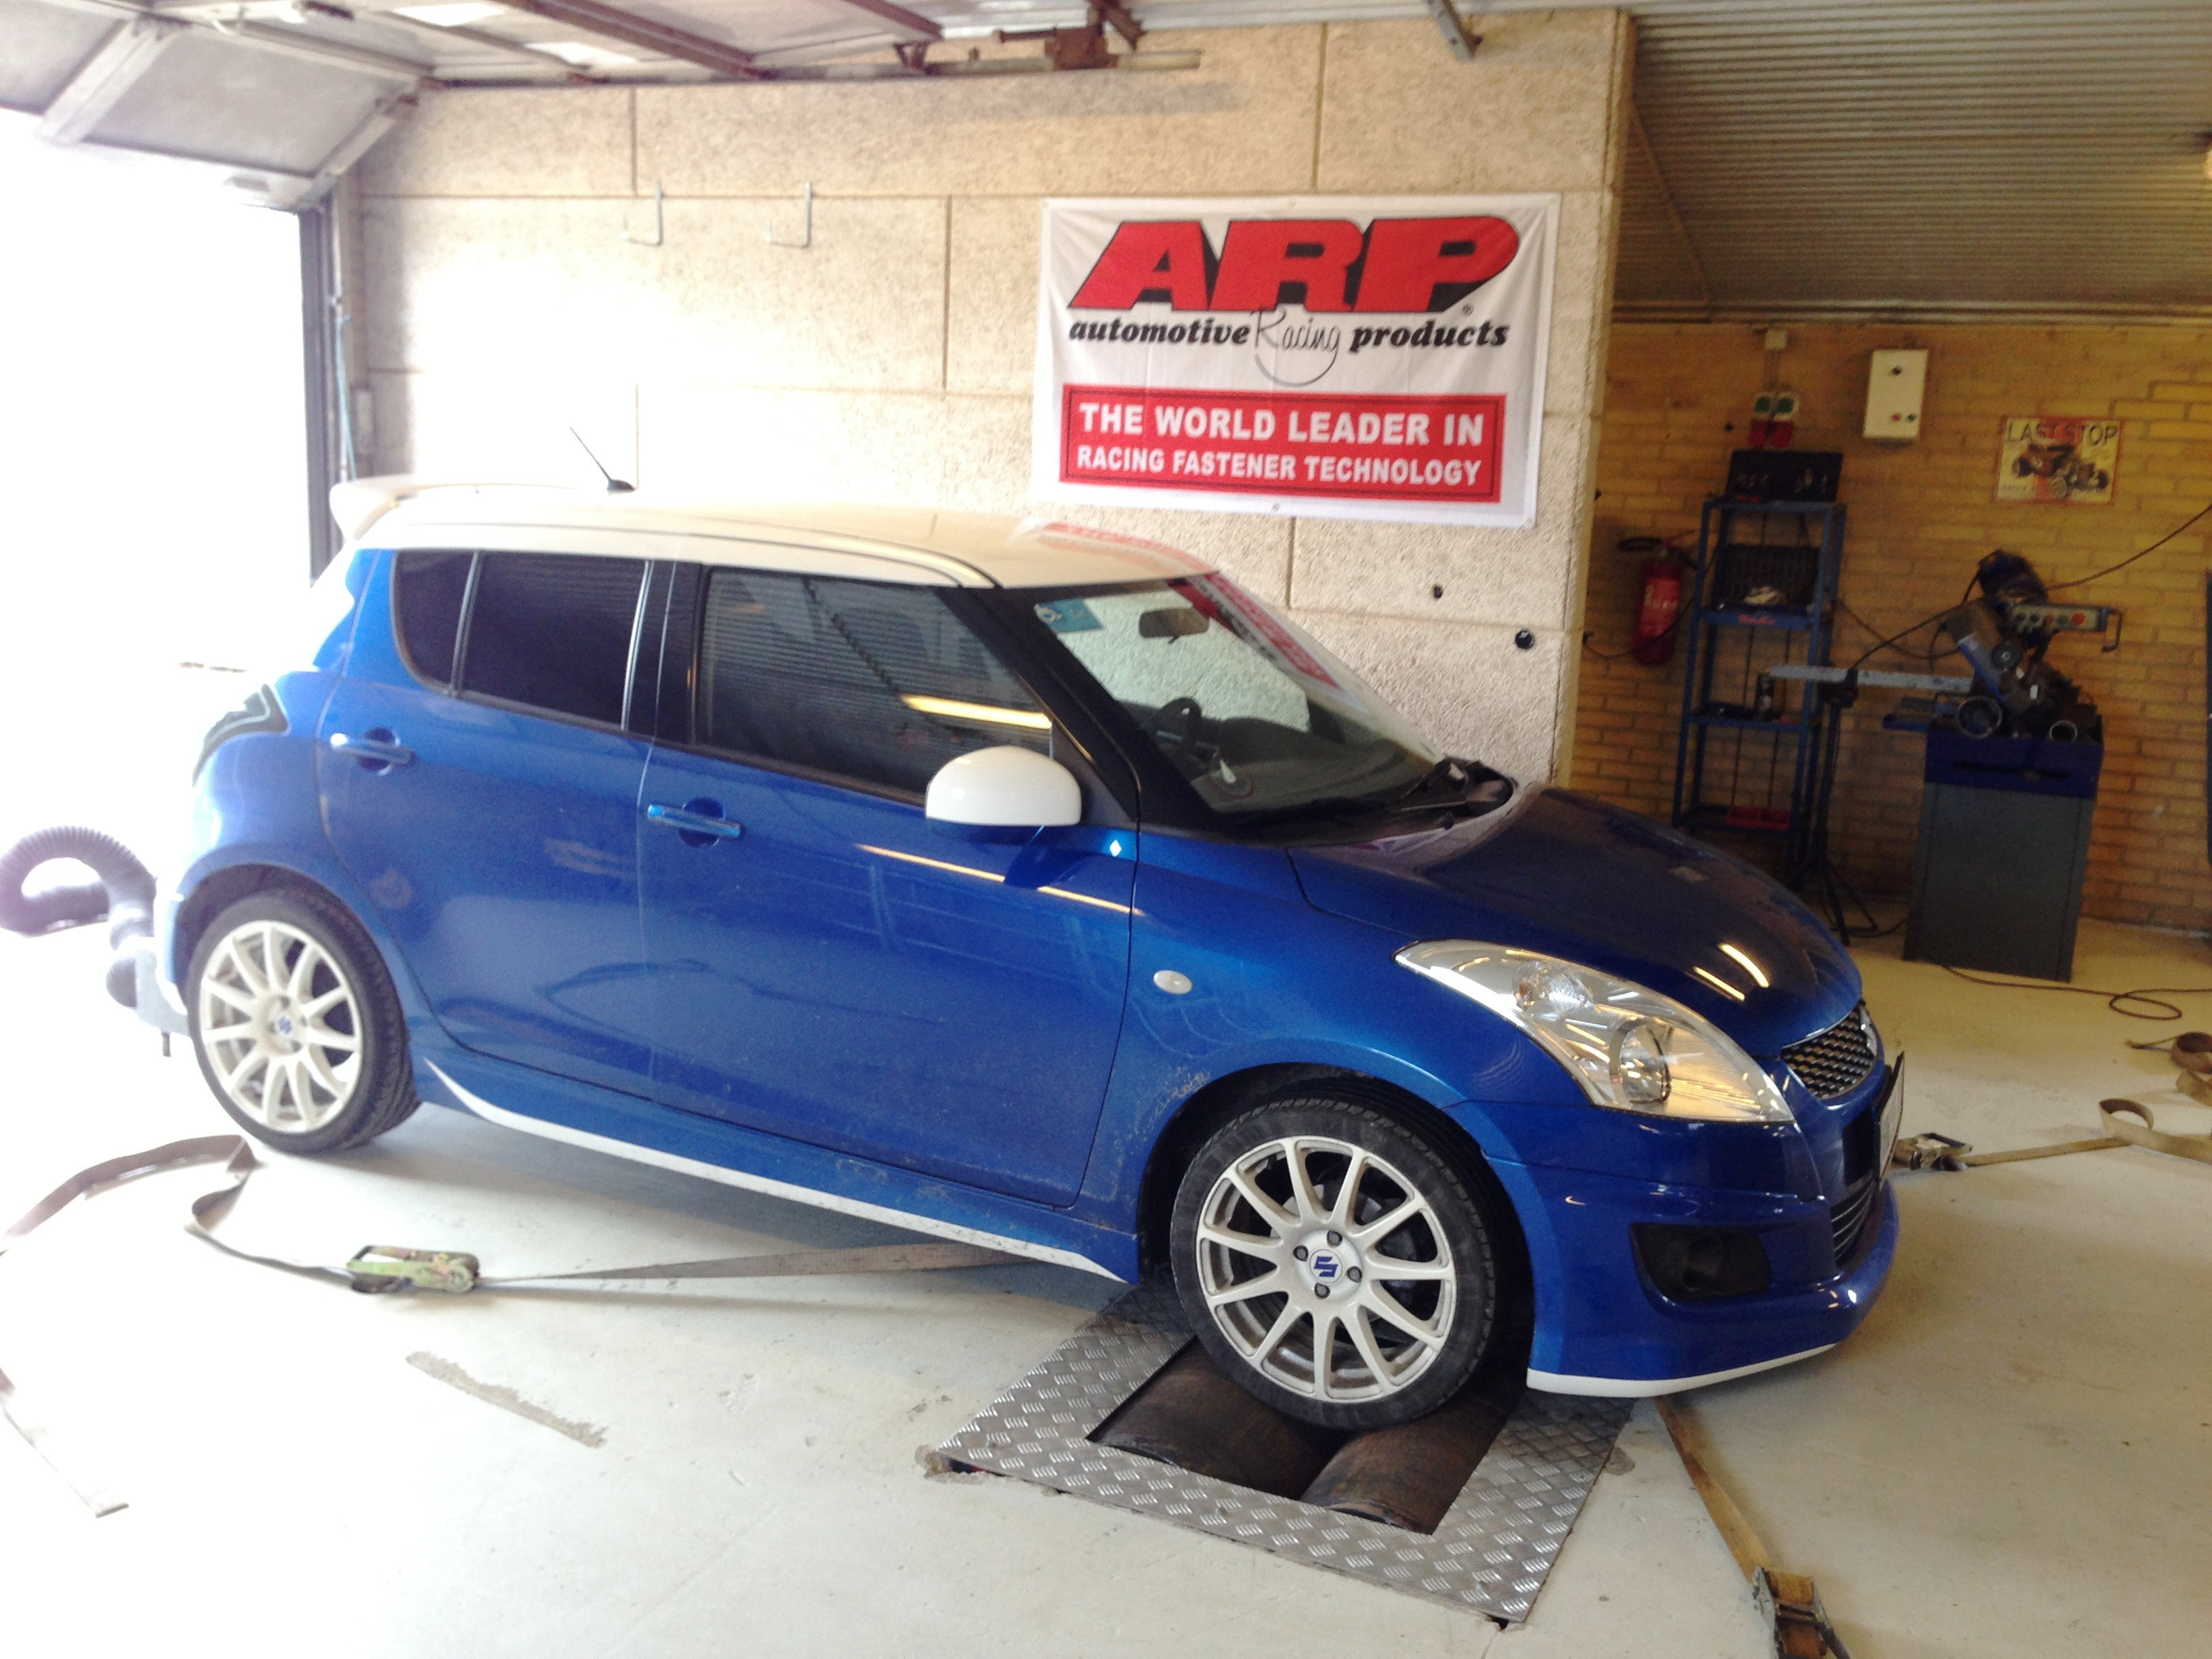 Suzuki Swift chiptuning (4)